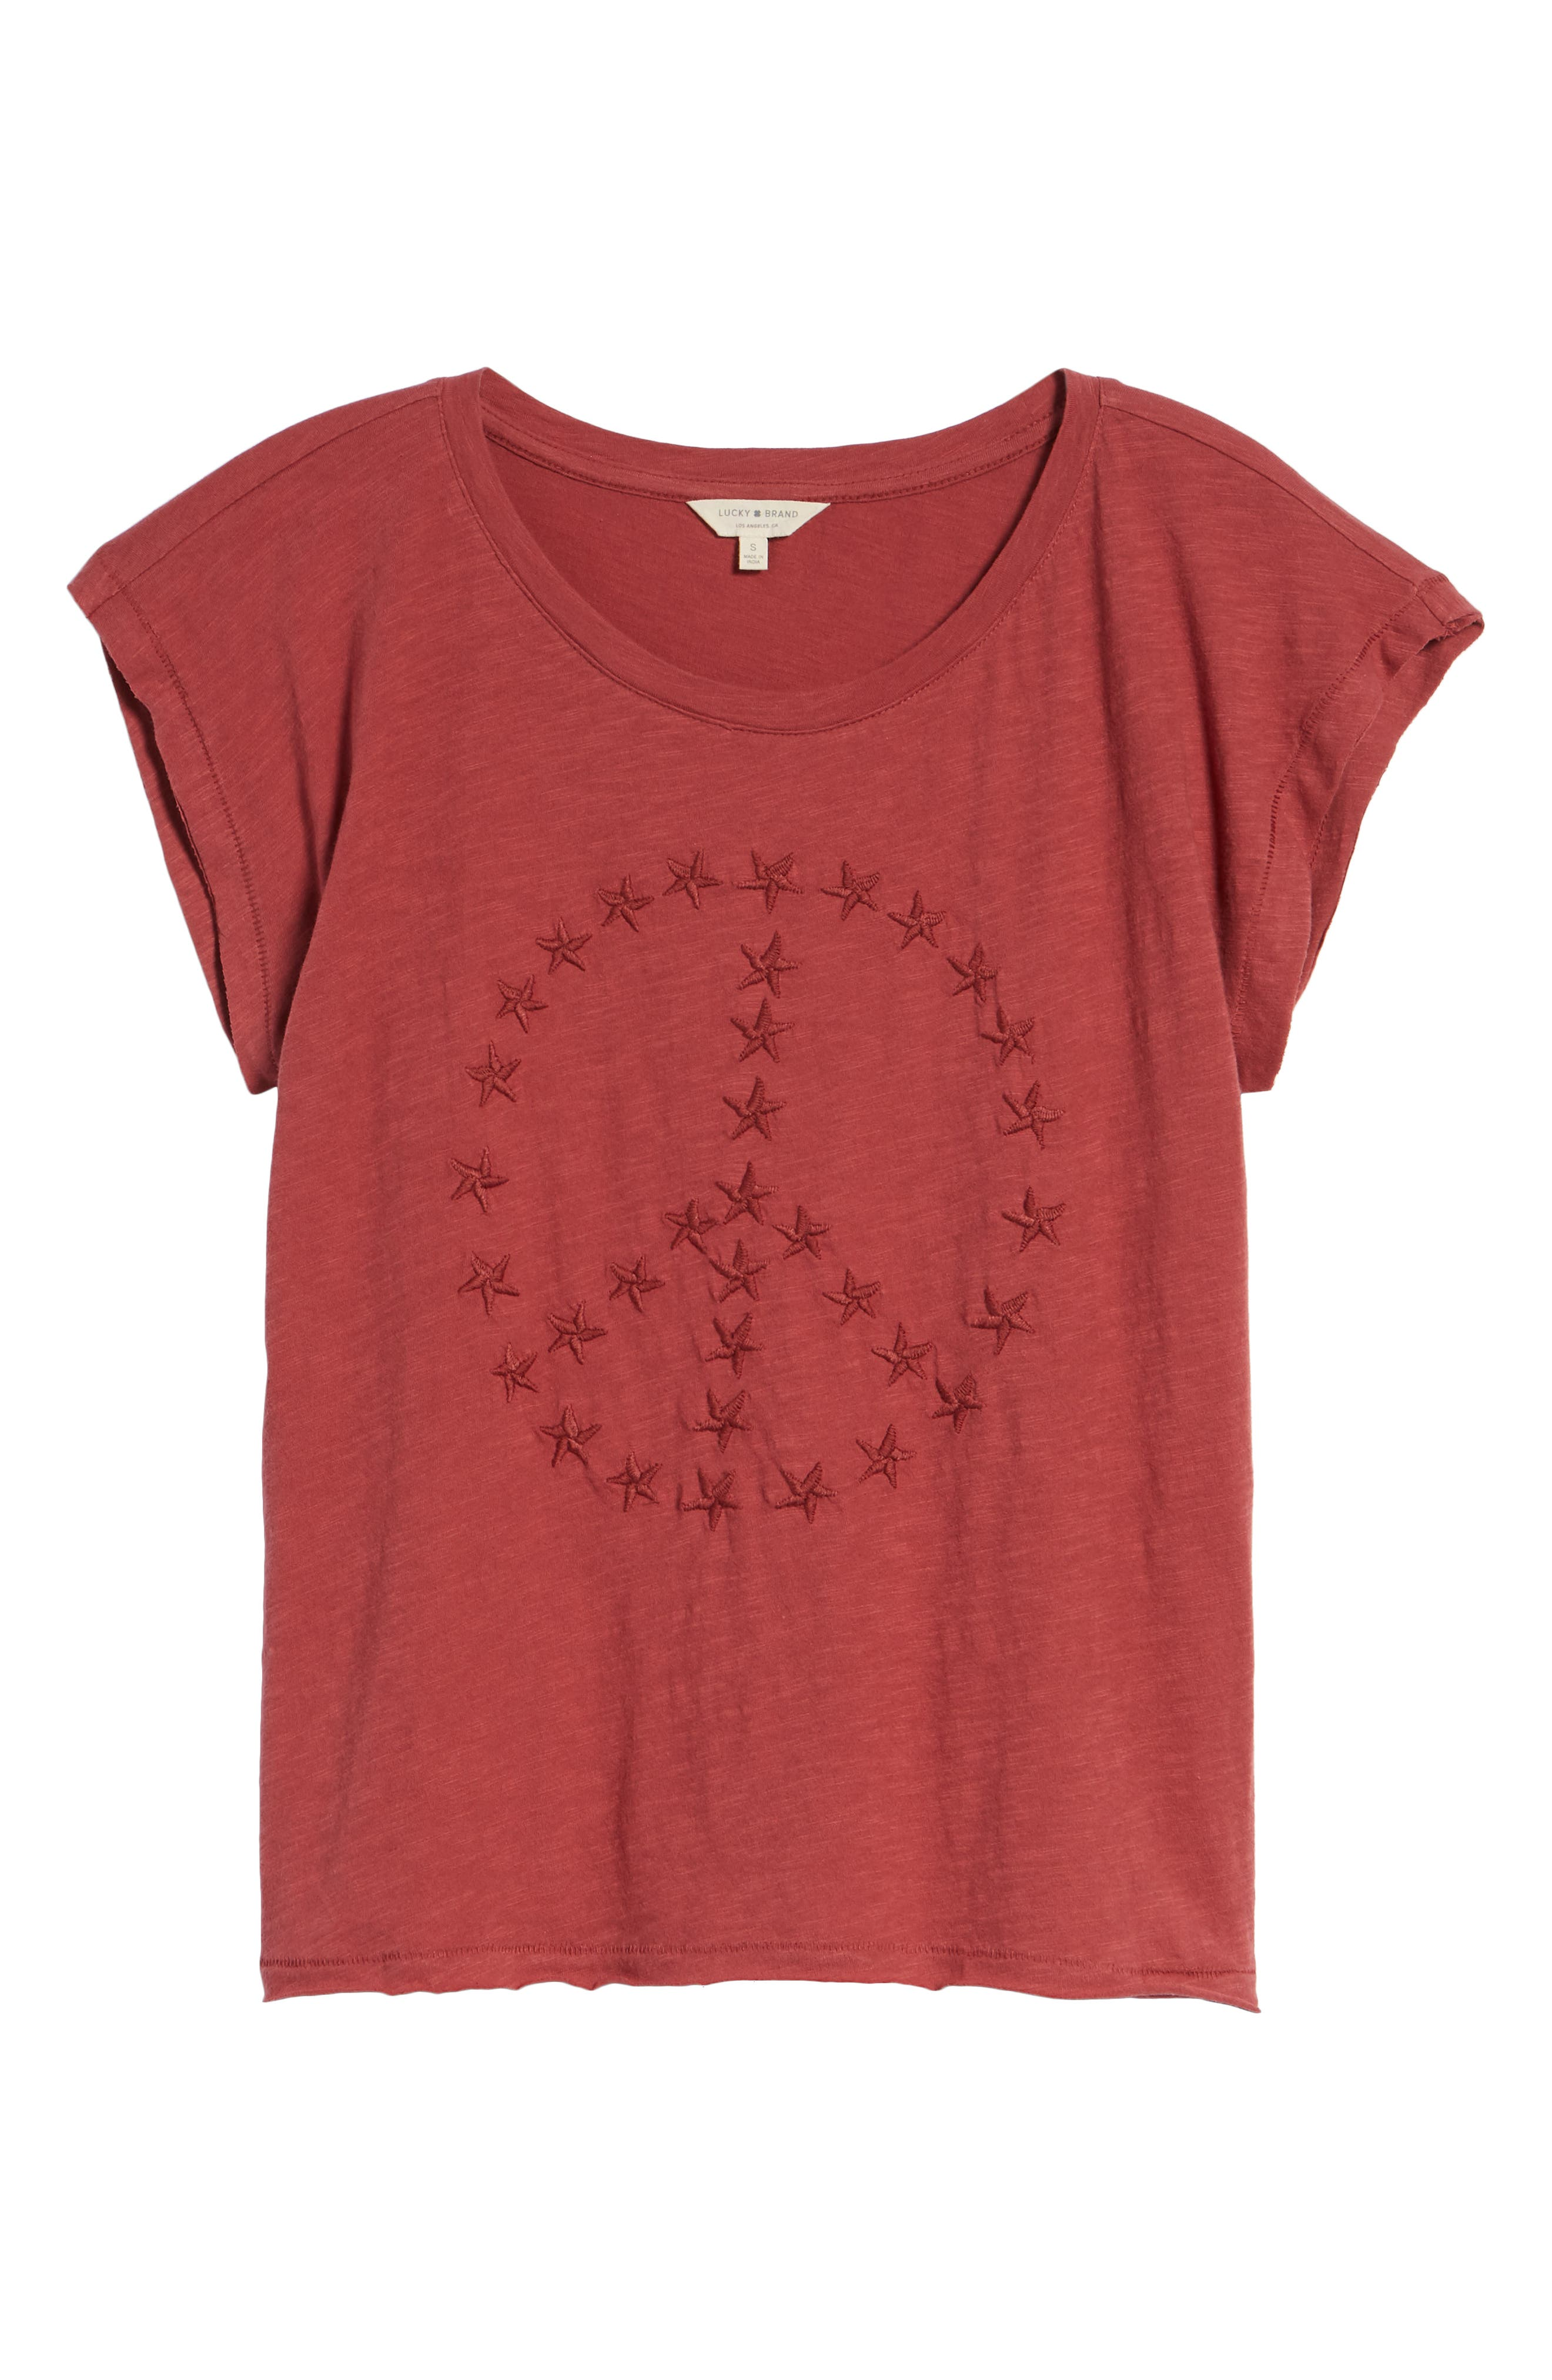 Embroidered Peace Sign Tee,                             Alternate thumbnail 6, color,                             Rosewood